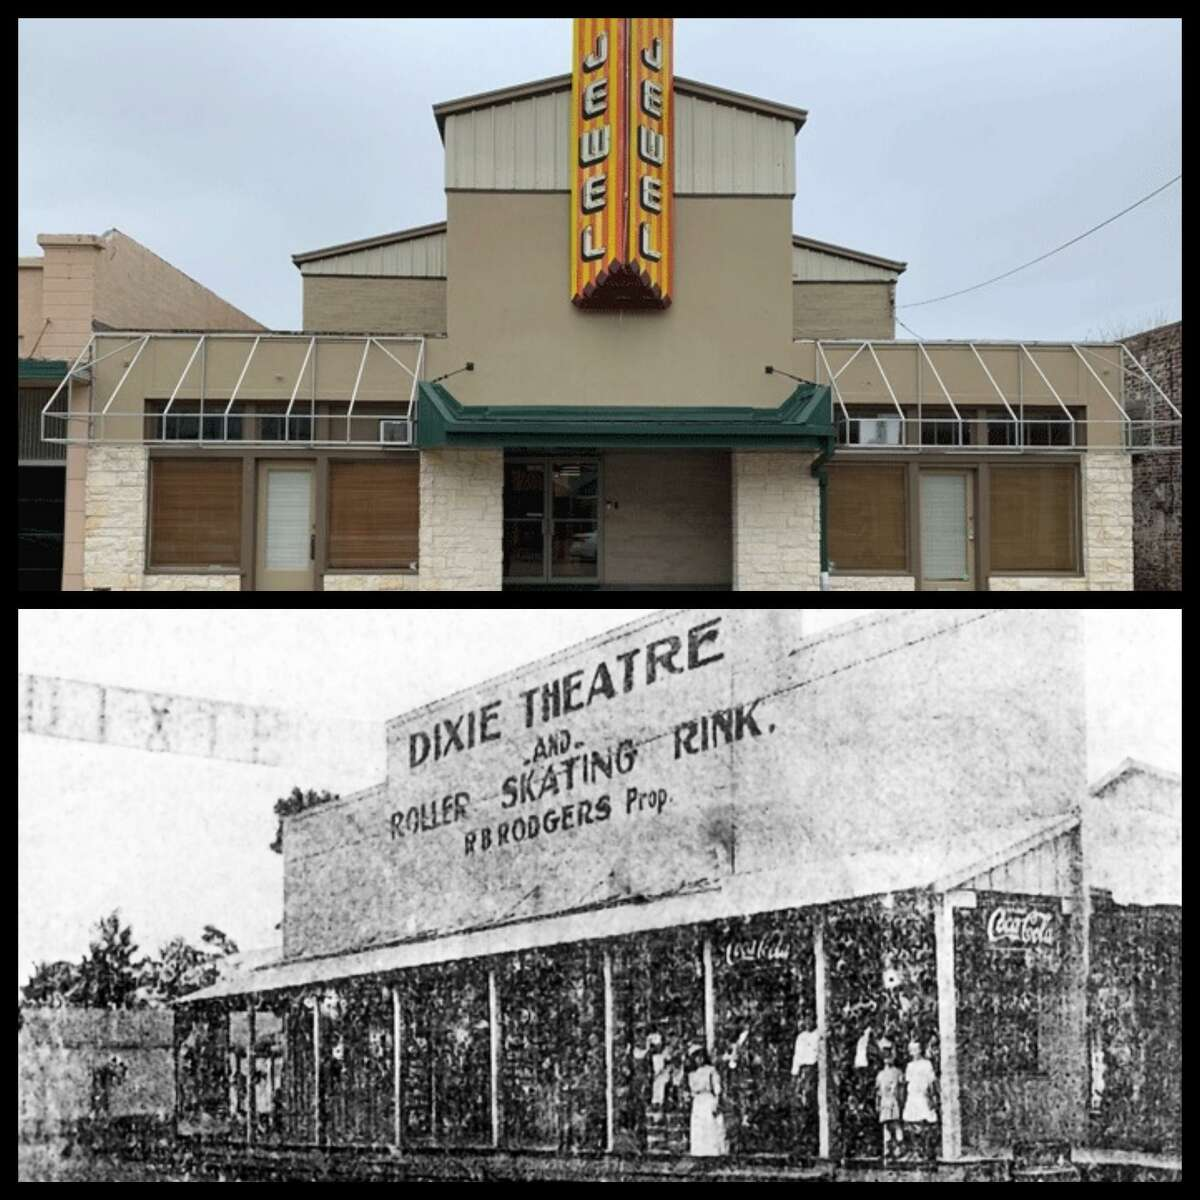 The Jewel Theatre, located on Main Street in Humble, was originally known as the Dixie Theatre and Roller Skating Rink, owned by R.B. Rogers in the early 1900's. In 1947 the Jewel Theatre sign moved from Texas City to Humble after the 1947 Texas City Disaster.